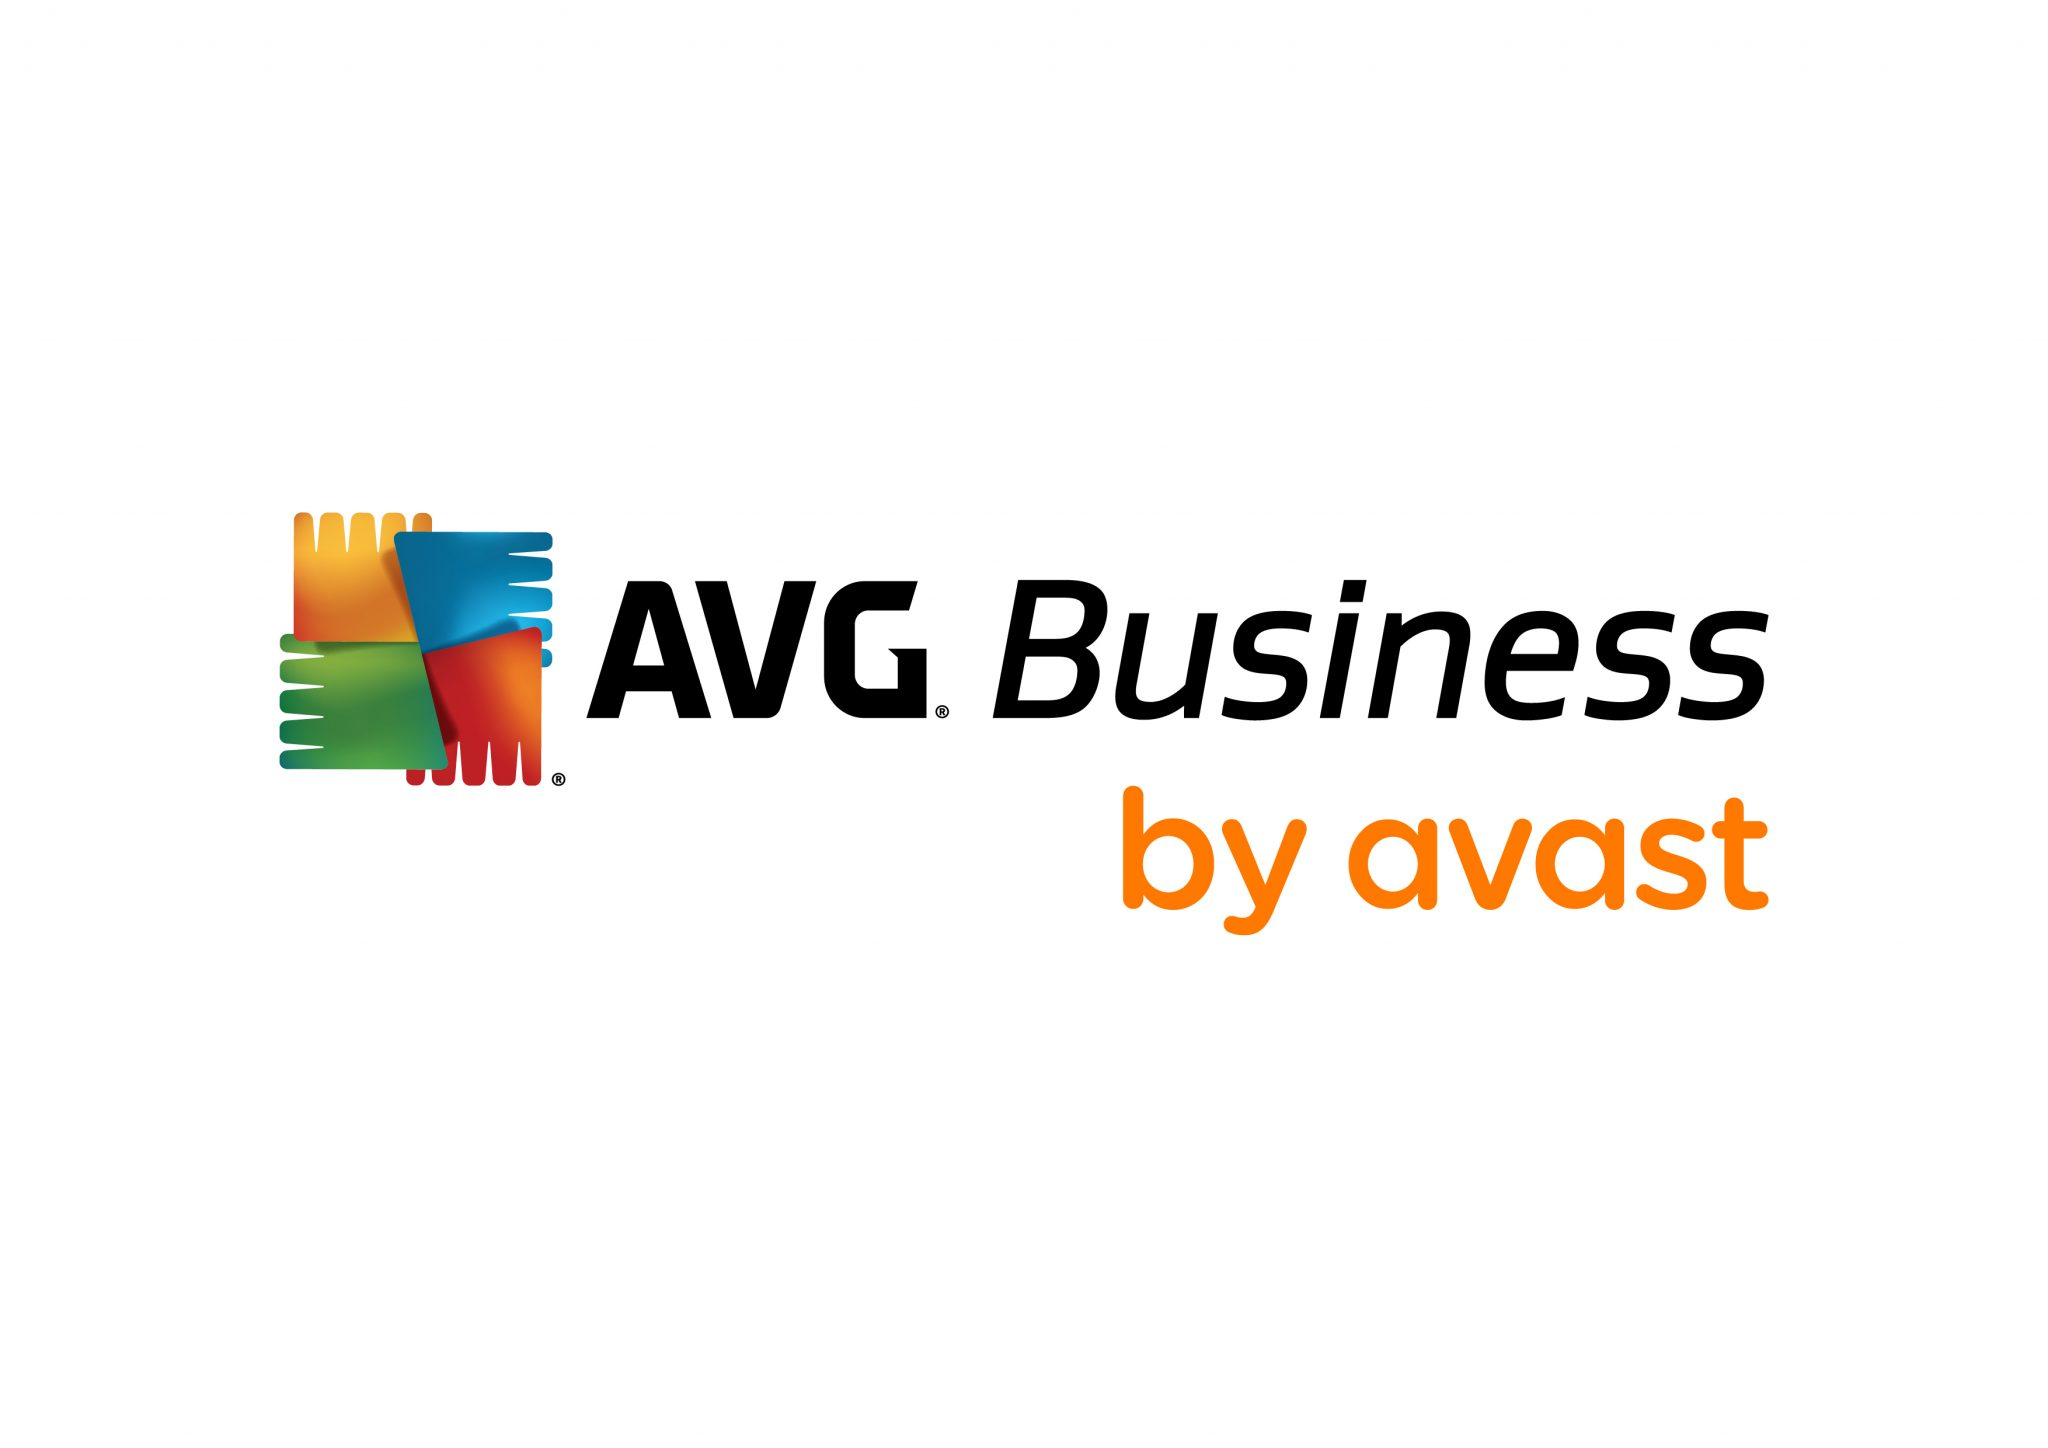 AVG Business by Avast